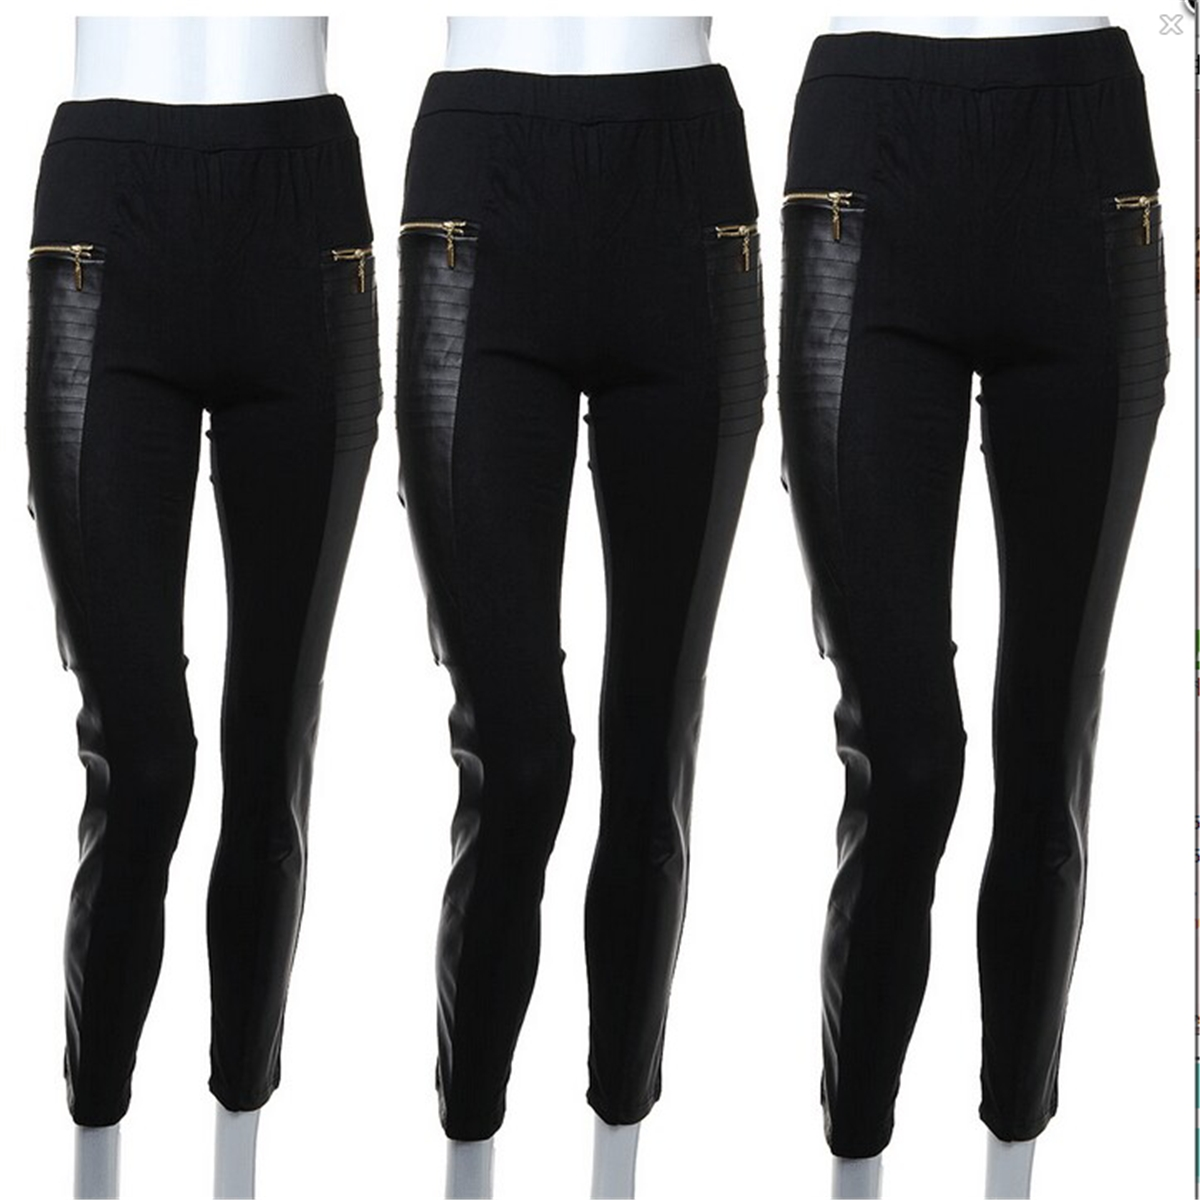 ASOS DESIGN Petite leather look leggings with elastic slim waist. $ ASOS DESIGN Petite leather look leggings with panelling. $ Outrageous Fortune plus leather look pant in black. $ Lab Leather Pant in Skinny Fit. $ Outrageous Fortune leather look pant in black. $